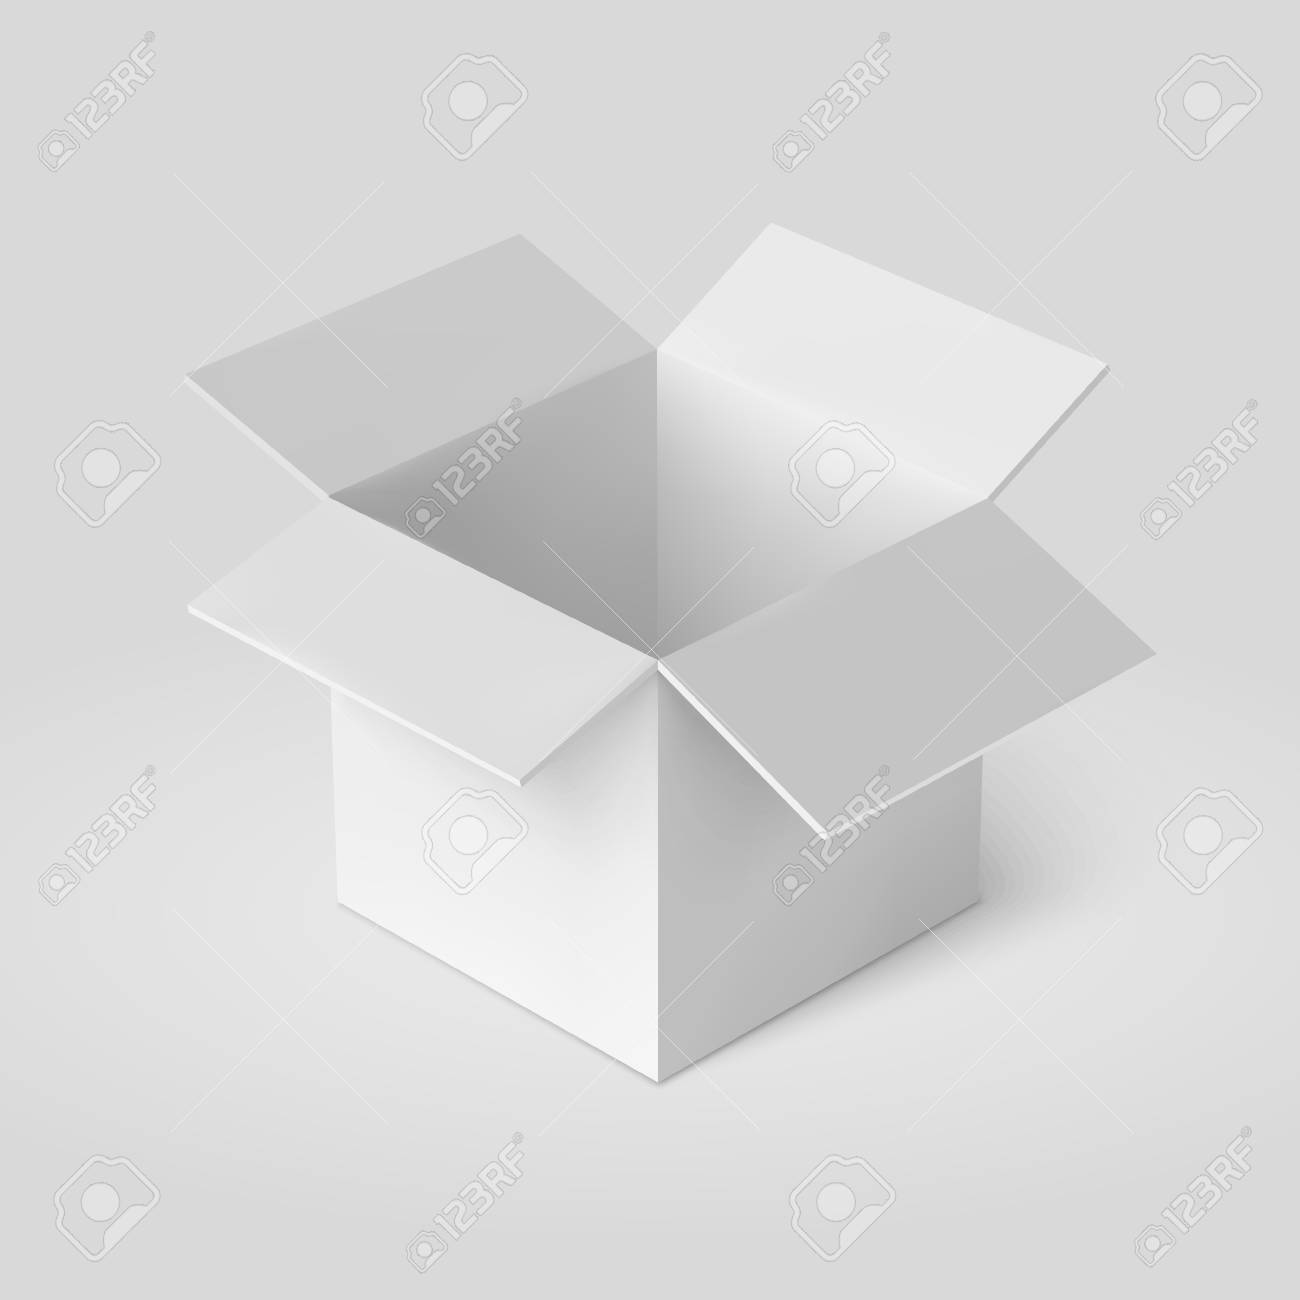 Open Box Template Isolated On White Vector Illustration Stock